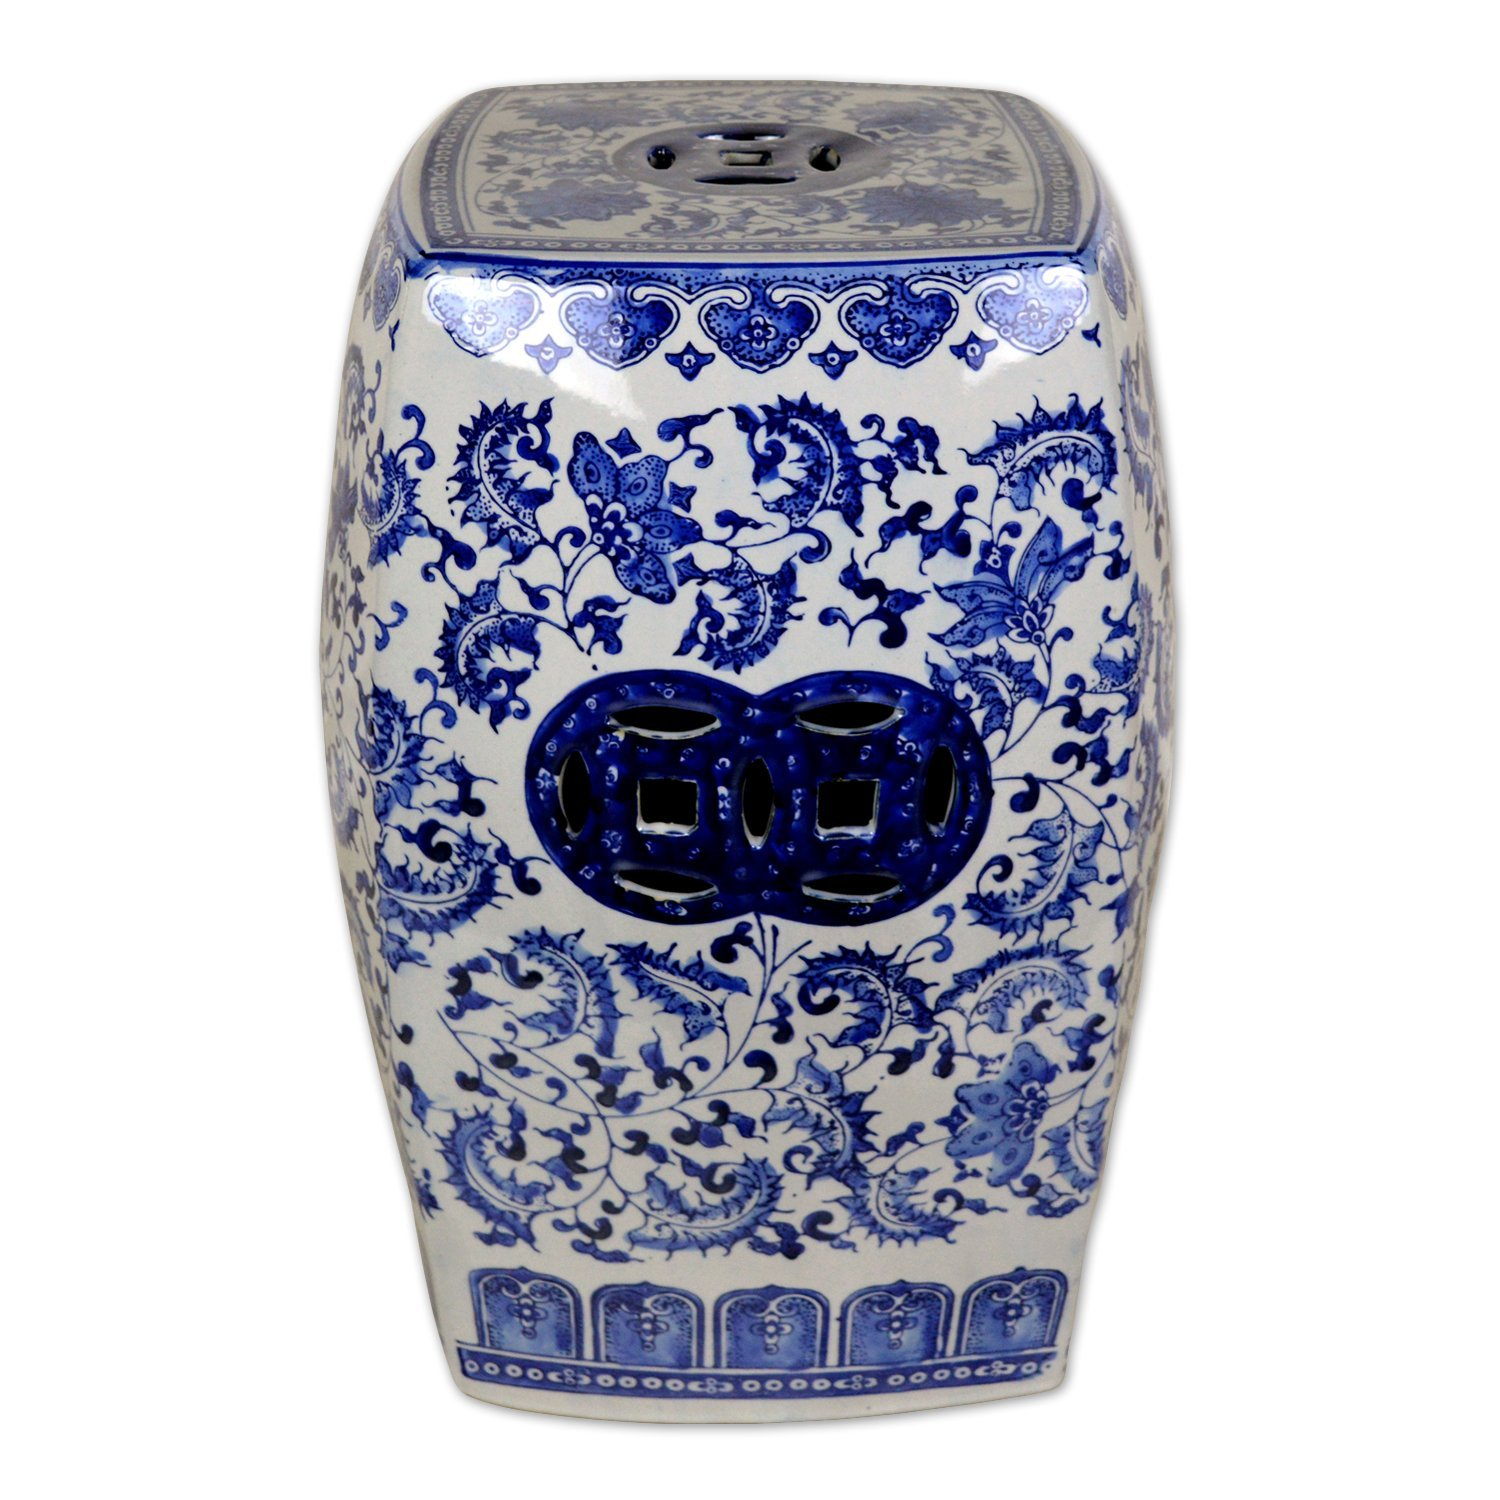 TransSino Treasures 18 inch Chinese Square Porcelain Garden Stool with Floral and Decorative Design.jpg  by TransSinoTreasures